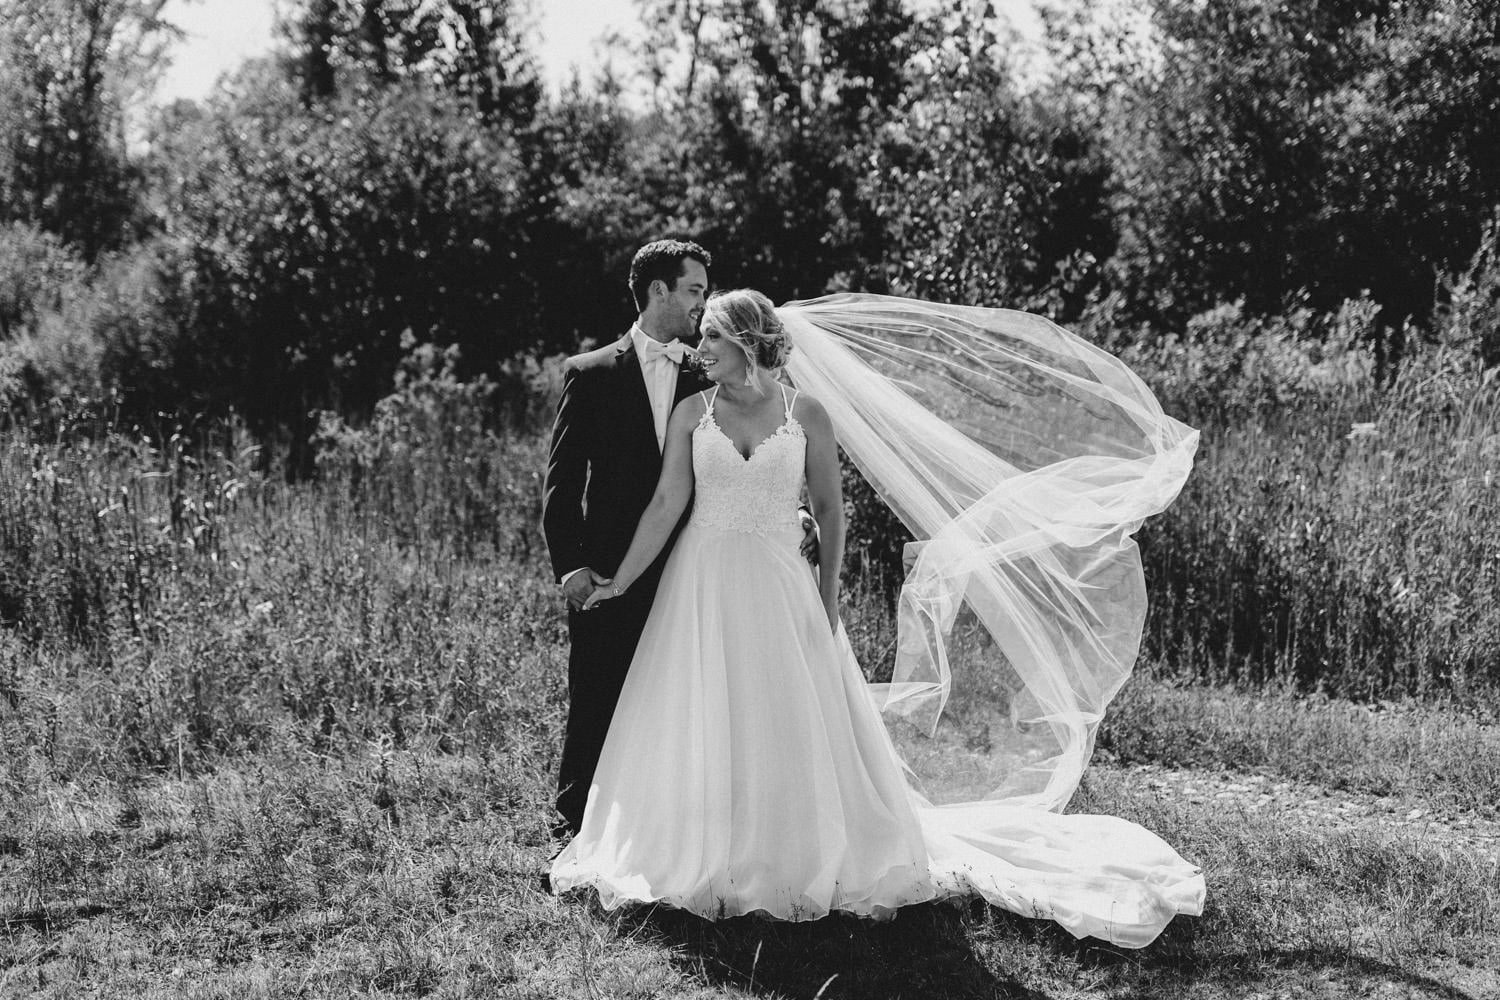 brides cathedral veil blows in wind - ottawa wedding photographer - carley teresa photography